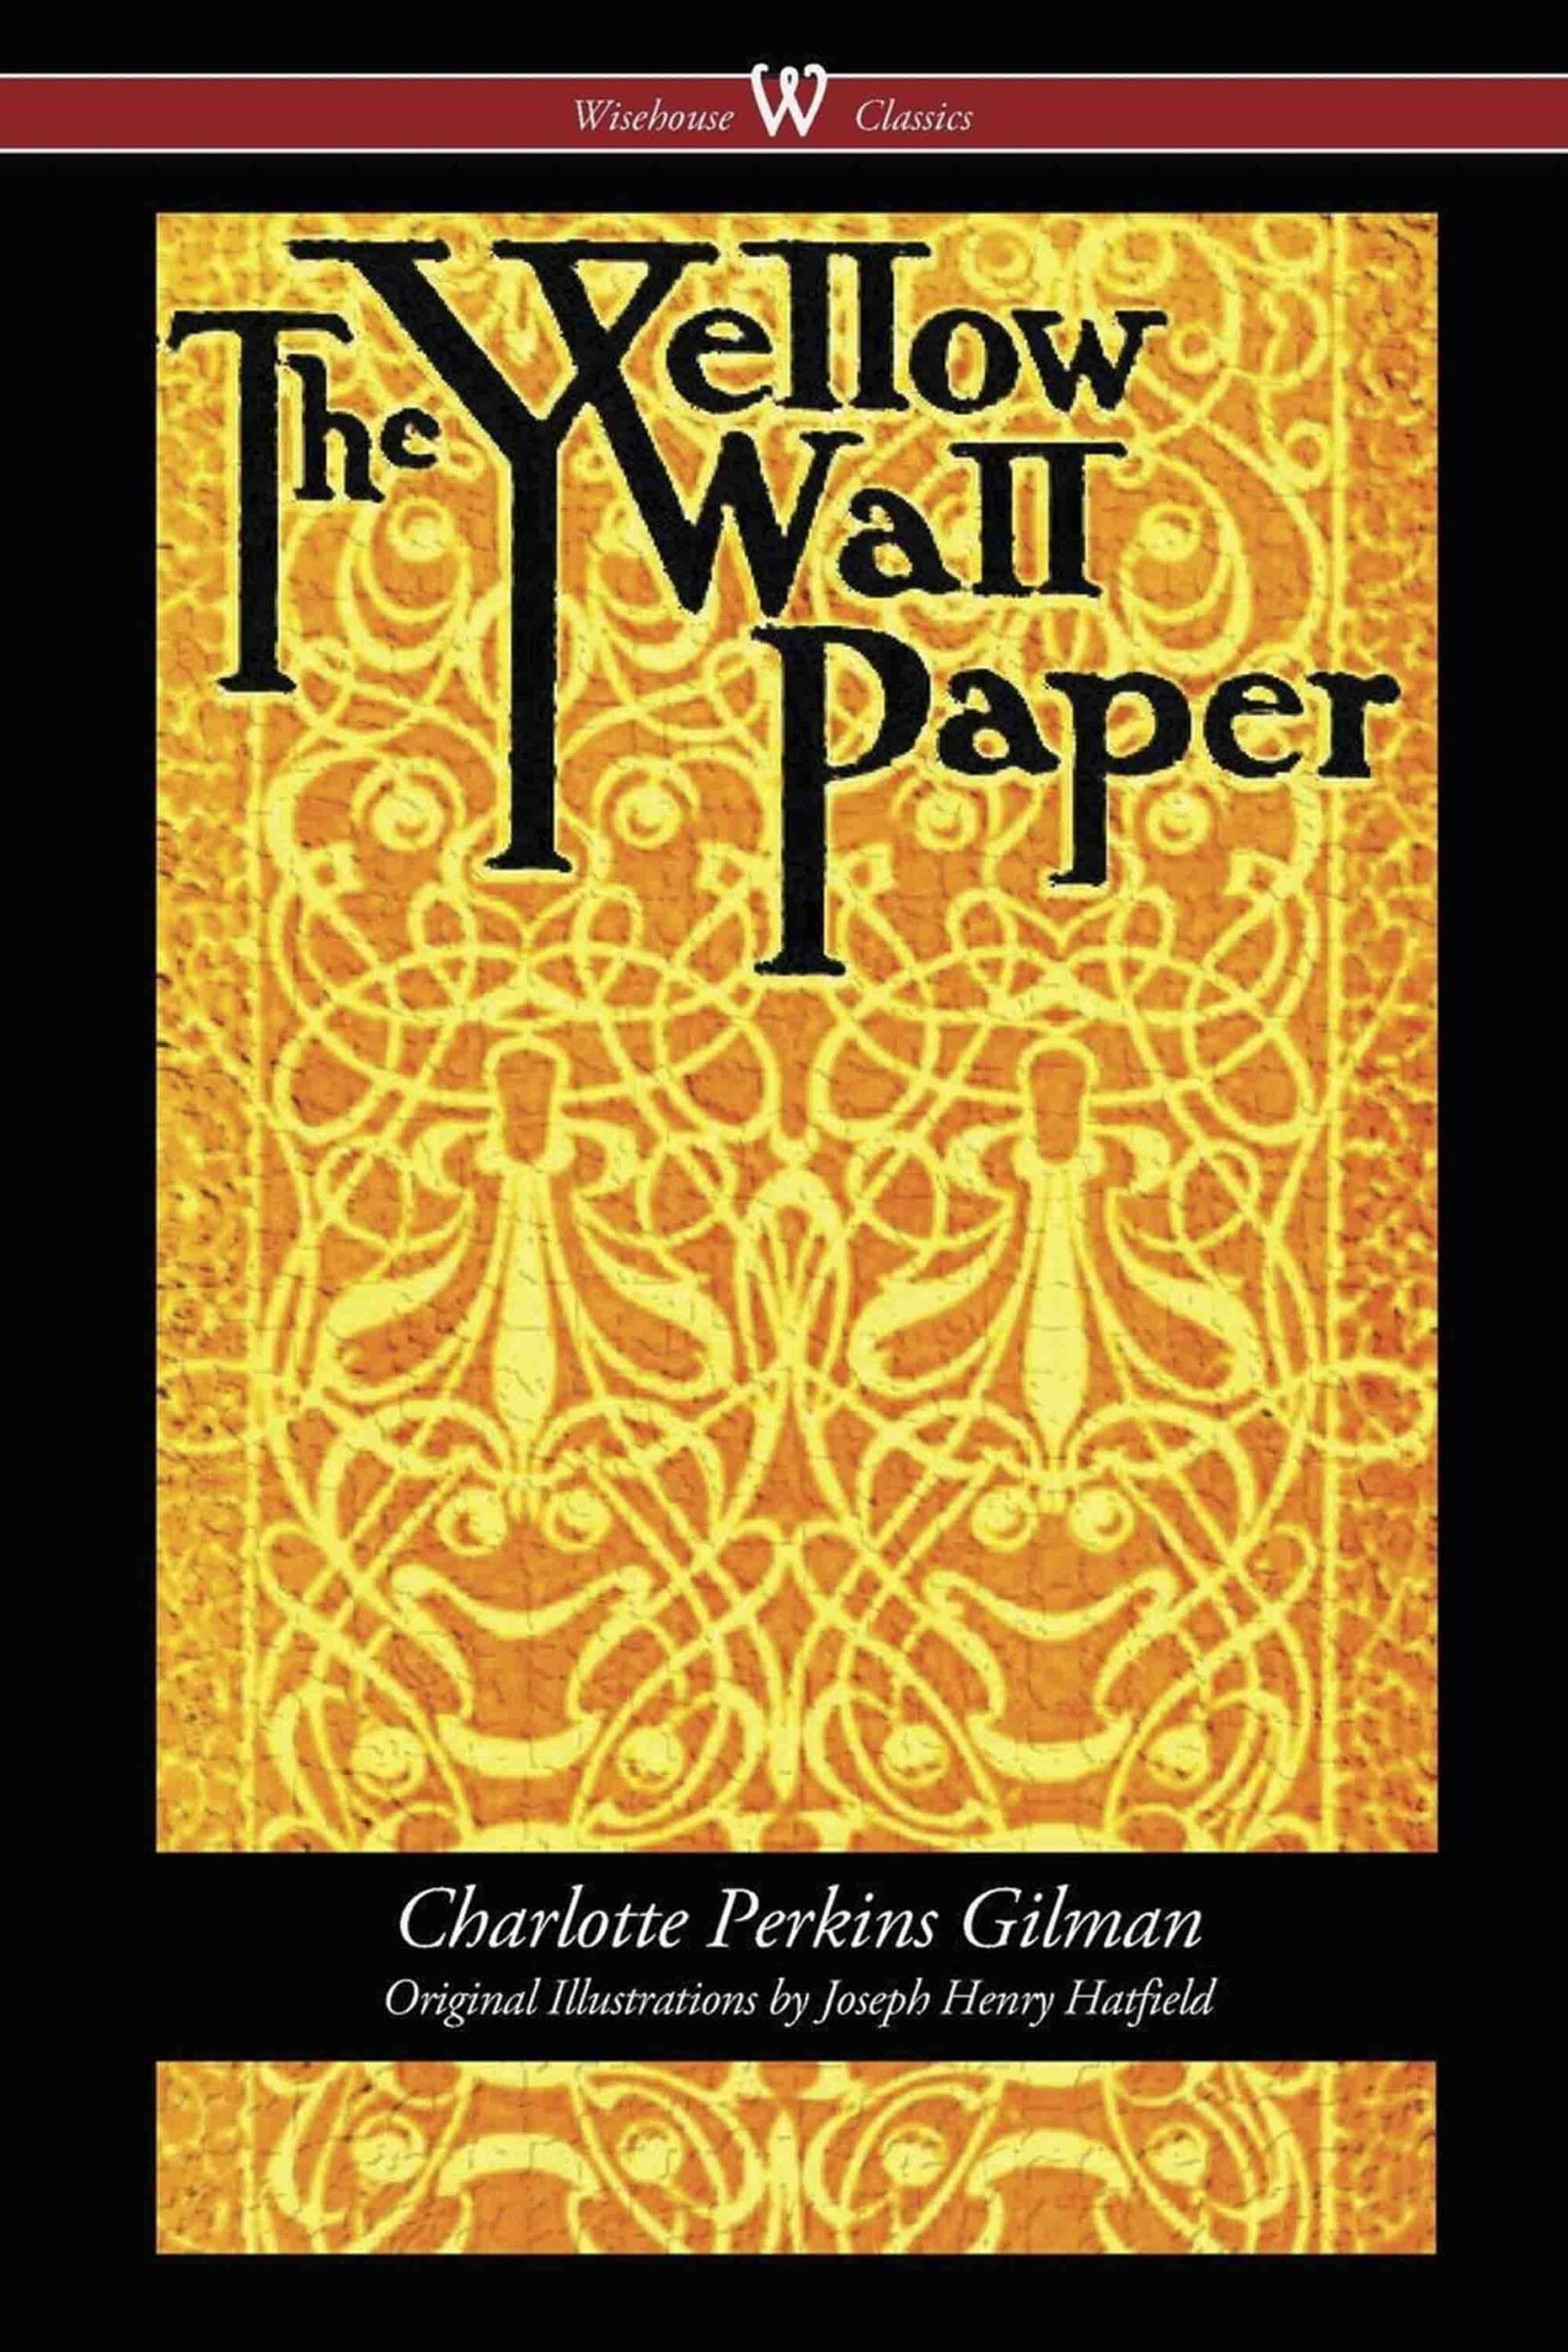 The Yellow Wallpaper (Wisehouse Classics – First 1892 Edition, with the Original Illustrations by Joseph Henry Hatfield)